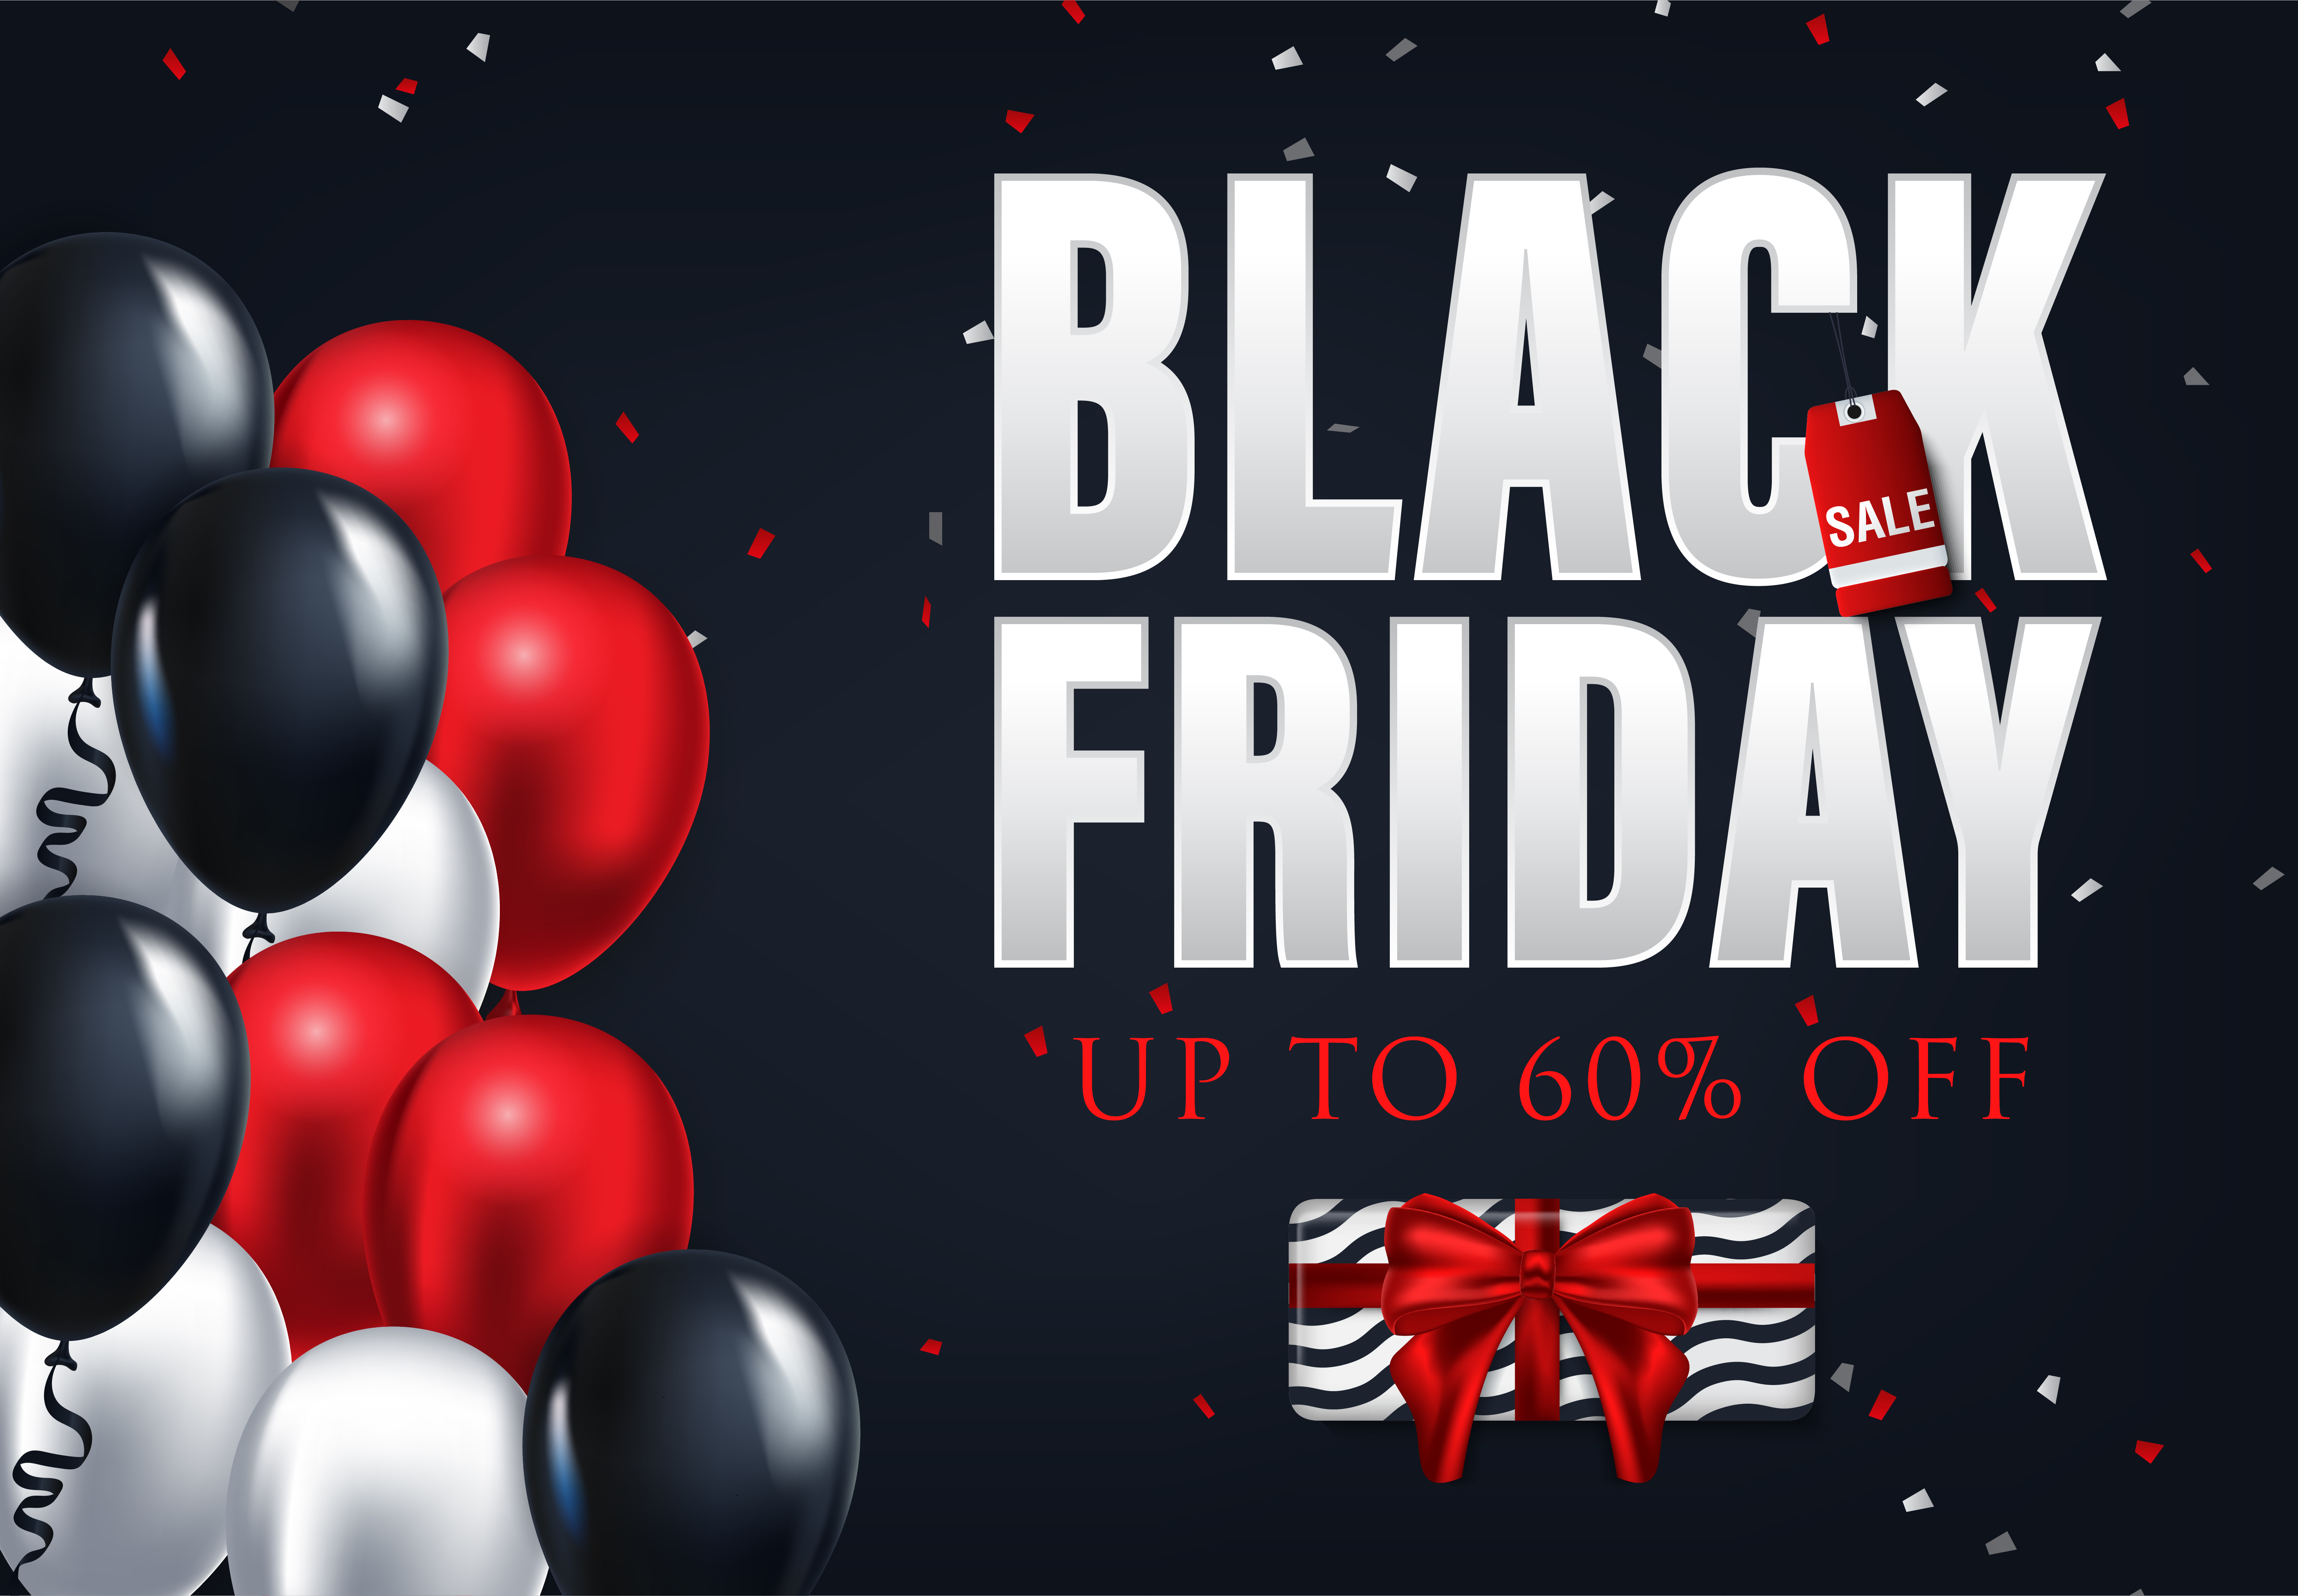 Black Friday Sale Flyers Collection Graphic By Inkwellapp Creative Fabrica